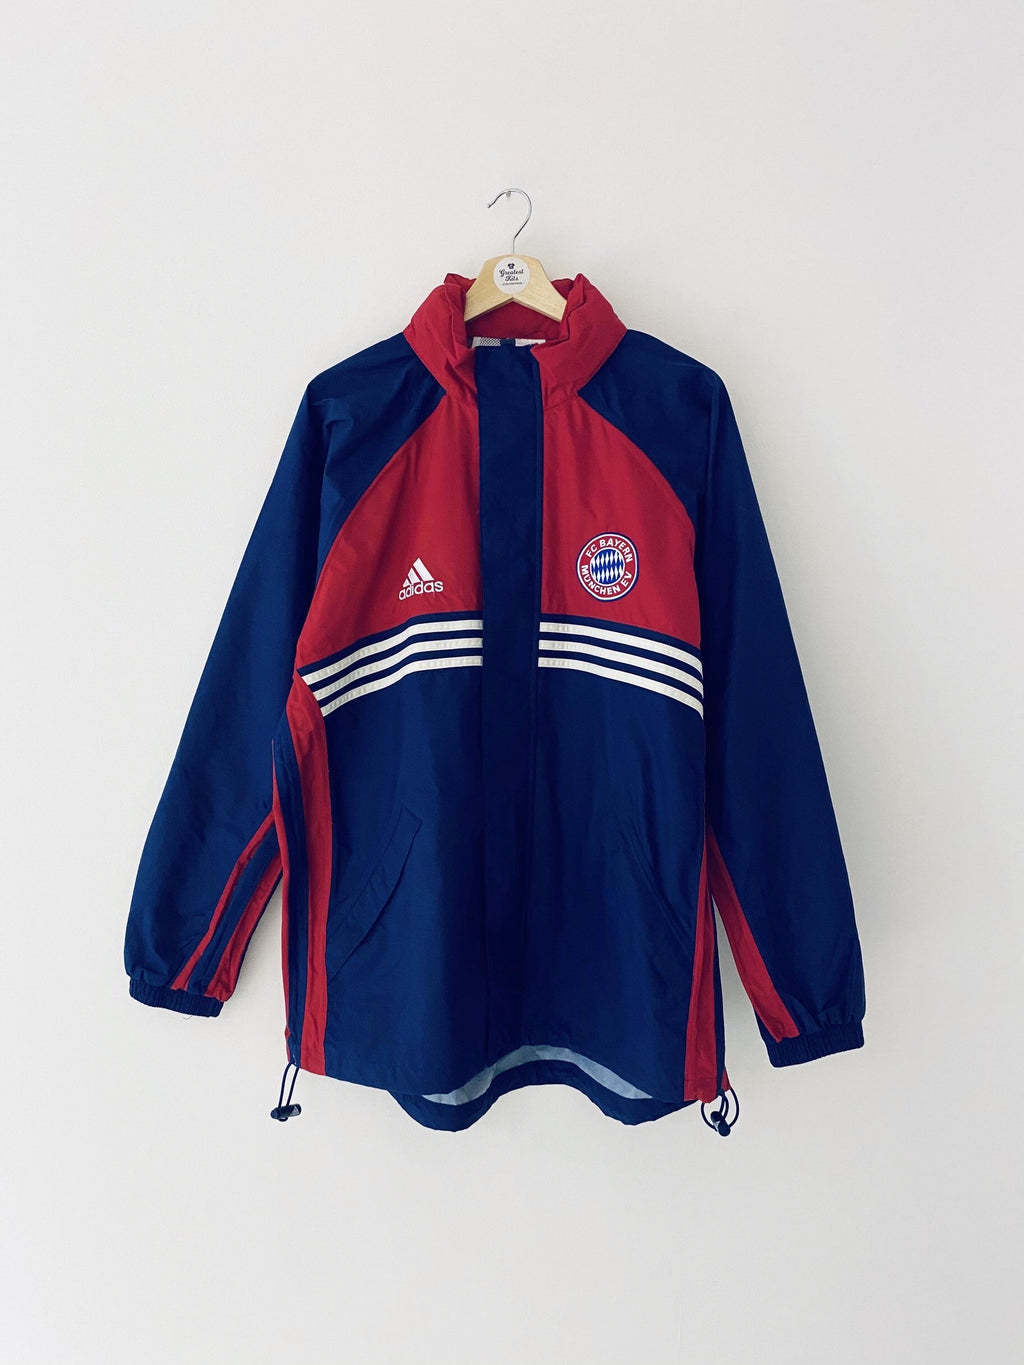 1998/99 Bayern Munich Training Jacket (M/L) 9/10